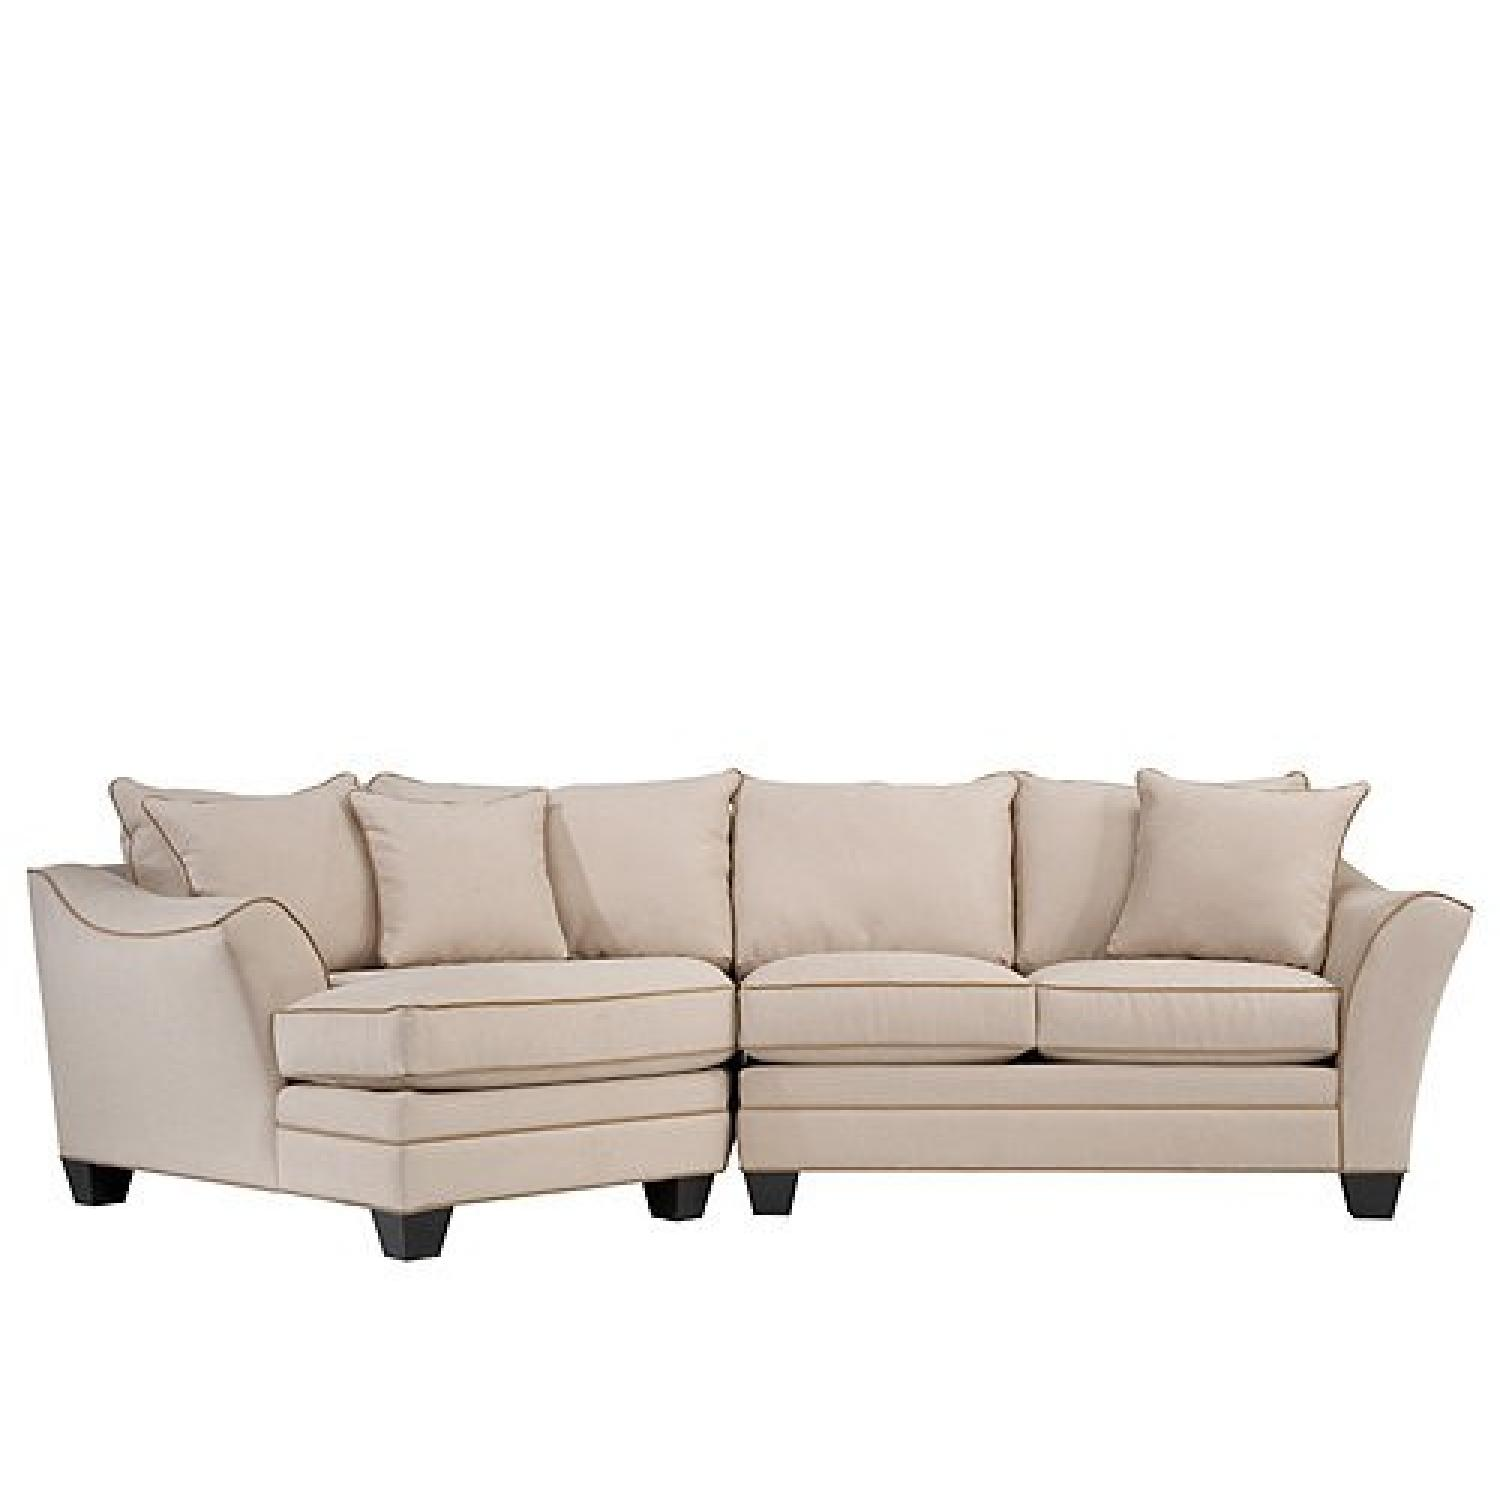 Raymour & Flanigan L Shaped Leather Sectional Couch AptDeco